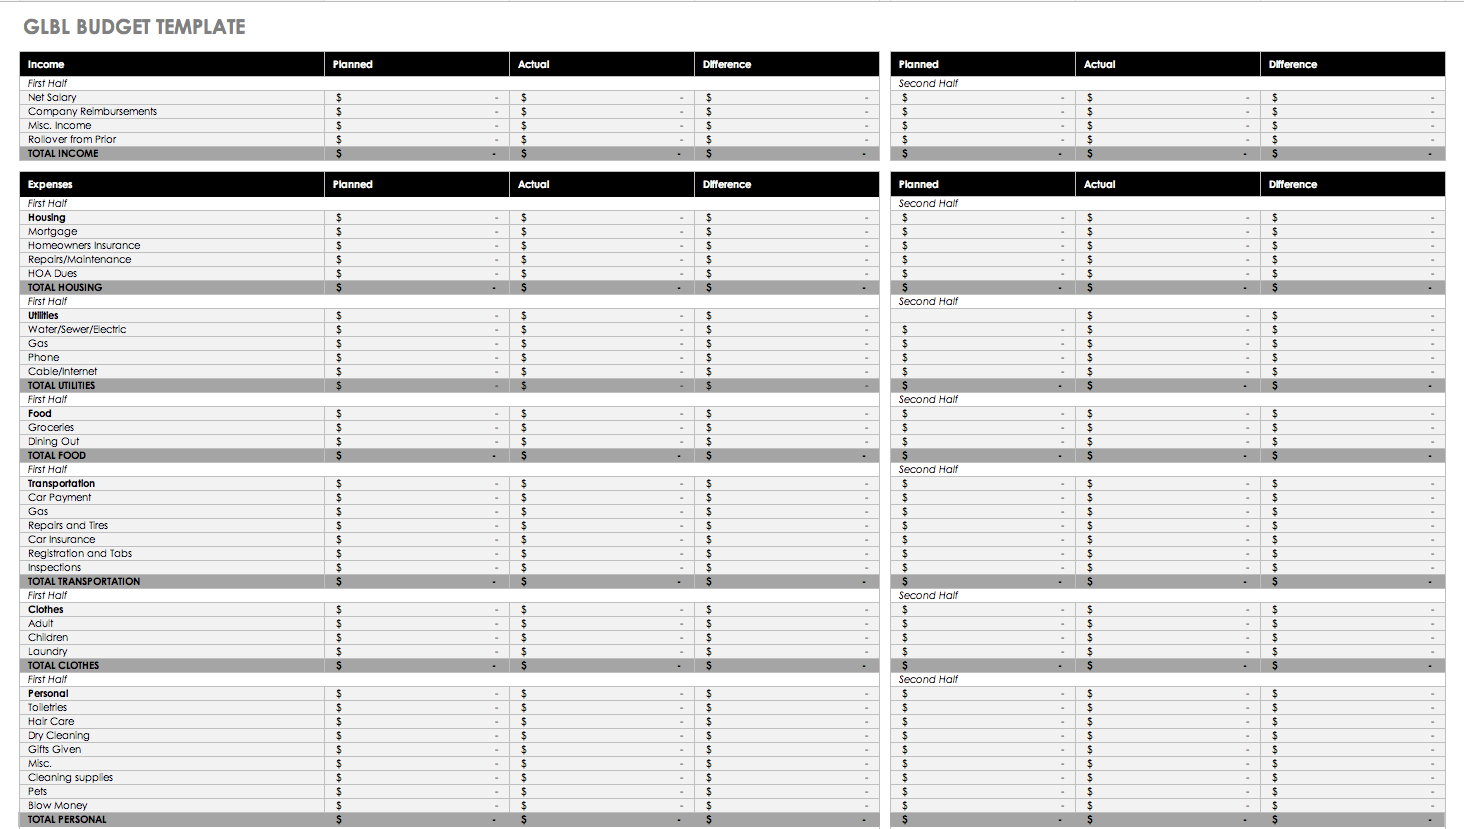 Annual Budget Spreadsheet With Regard To Free Budget Templates In Excel For Any Use